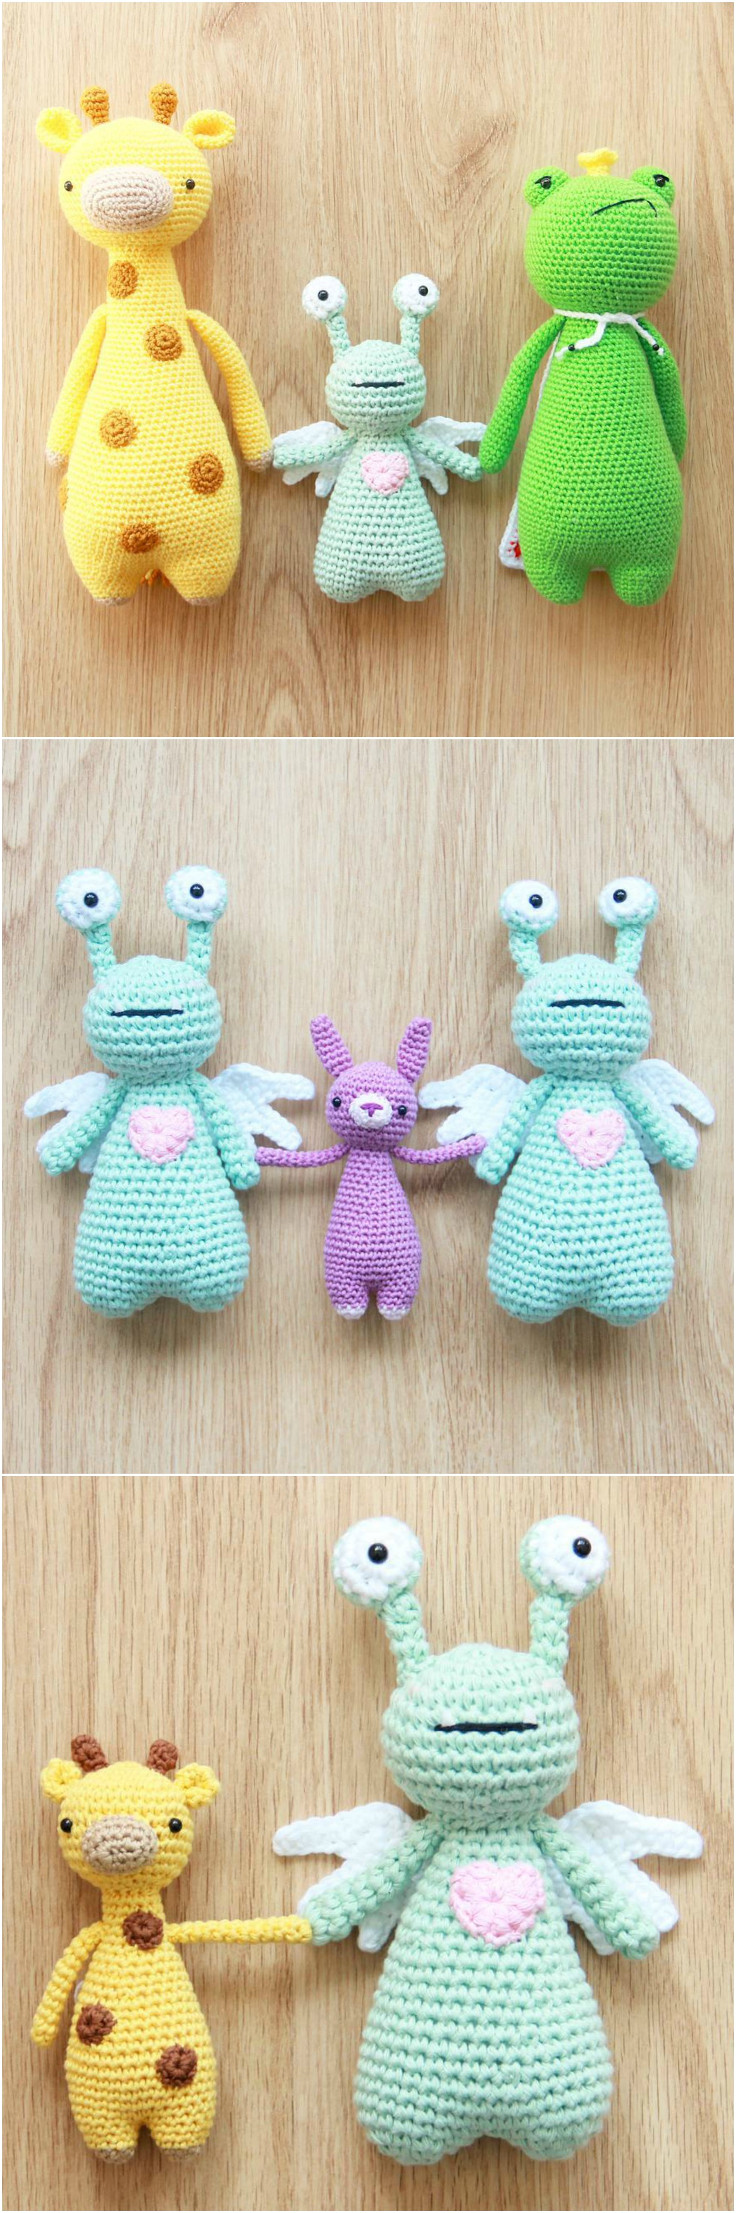 Amor and other crochet patterns by Little Bear Crochets: www.littlebearcrochets.com ❤️ #littlebearcrochets #amigurumi